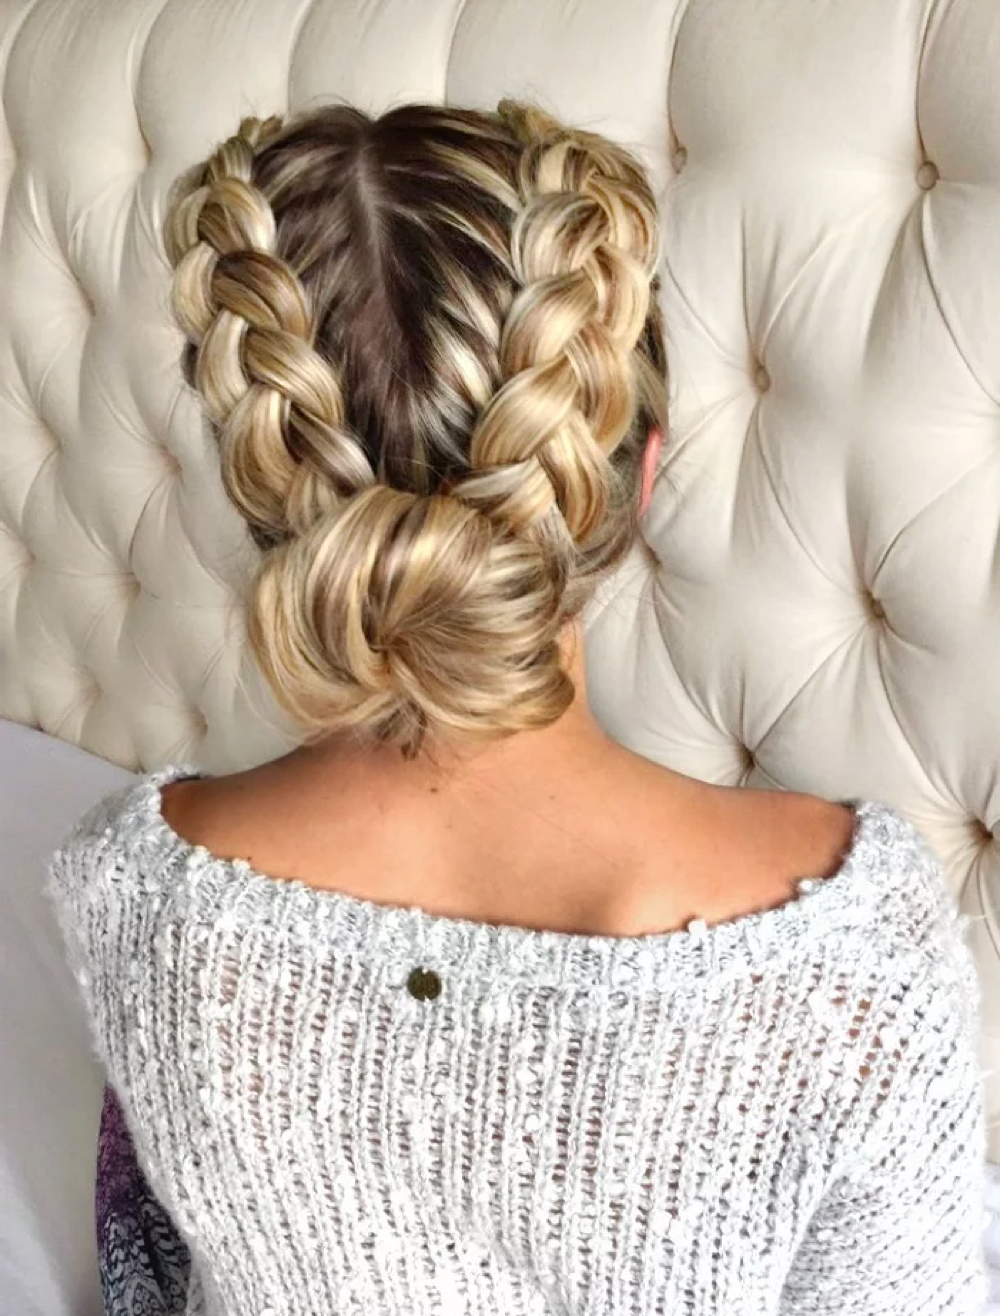 29 Gorgeous Braided Updo Ideas For 2019 With Recent Side Bun Twined Prom Hairstyles With A Braid (View 6 of 20)